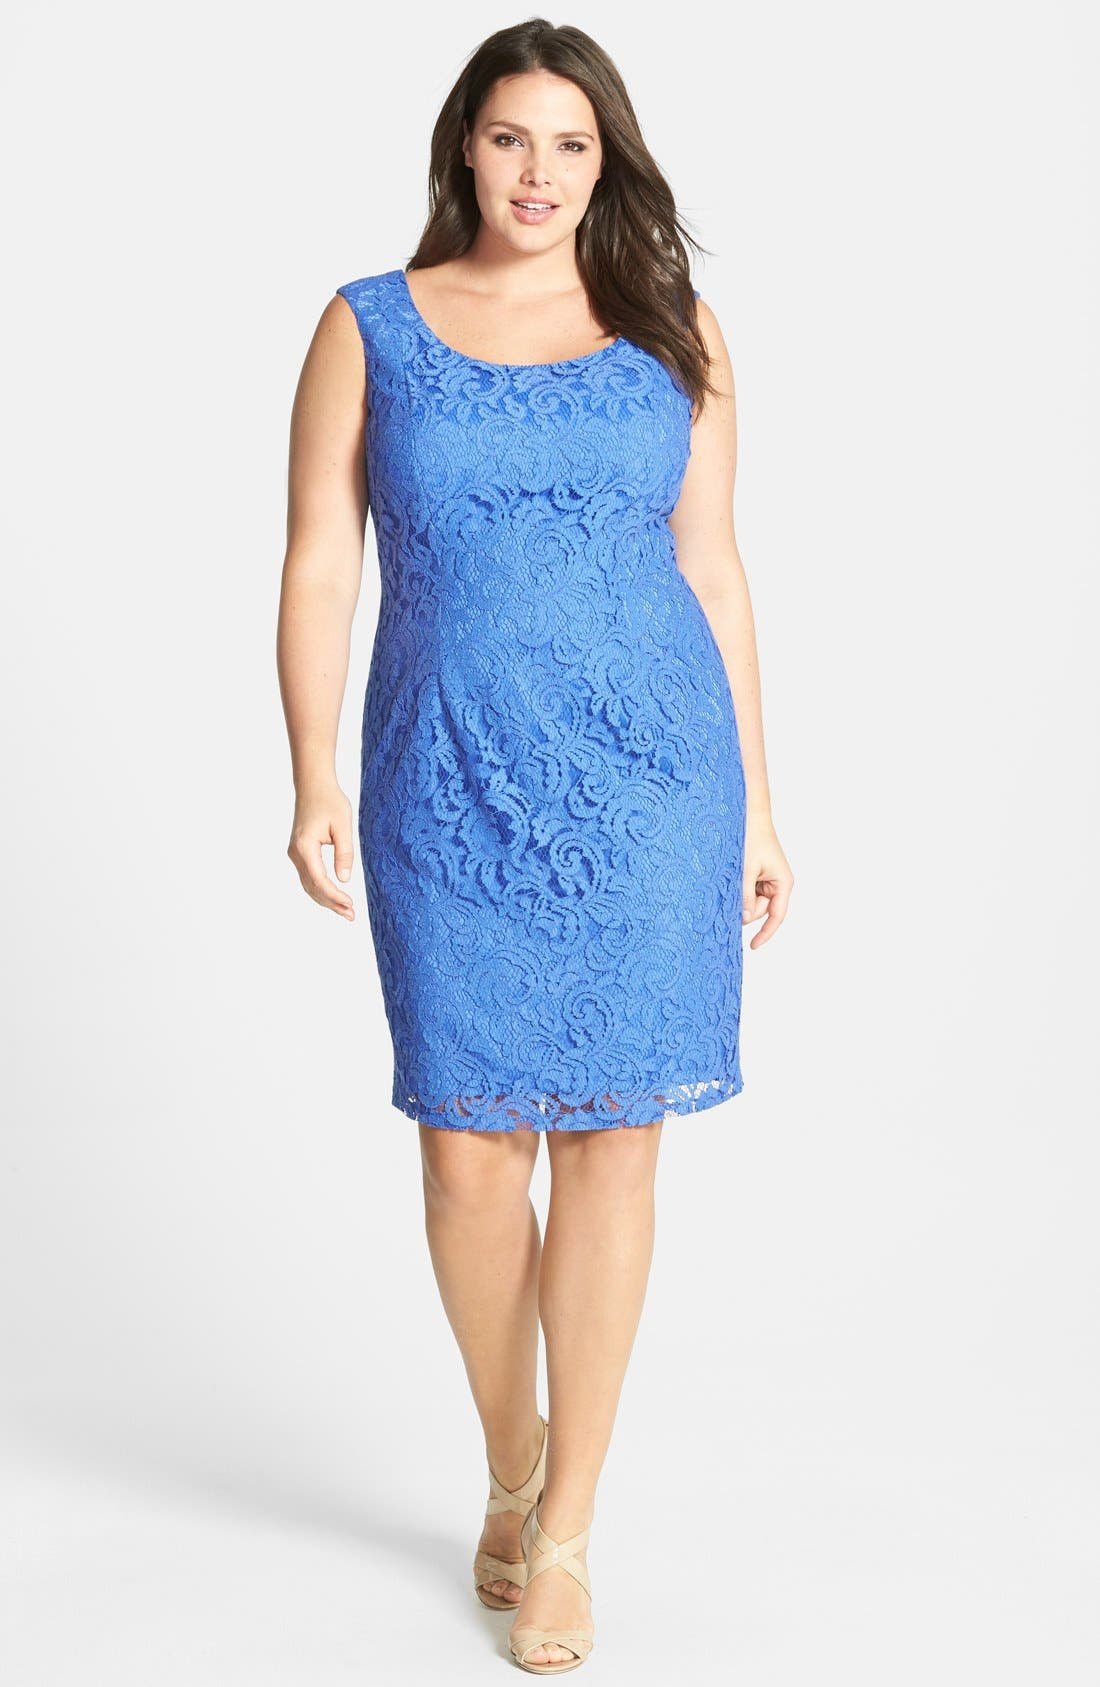 Alternate Image 1 Selected - Adrianna Papell Sleeveless Lace Sheath Dress (Plus)